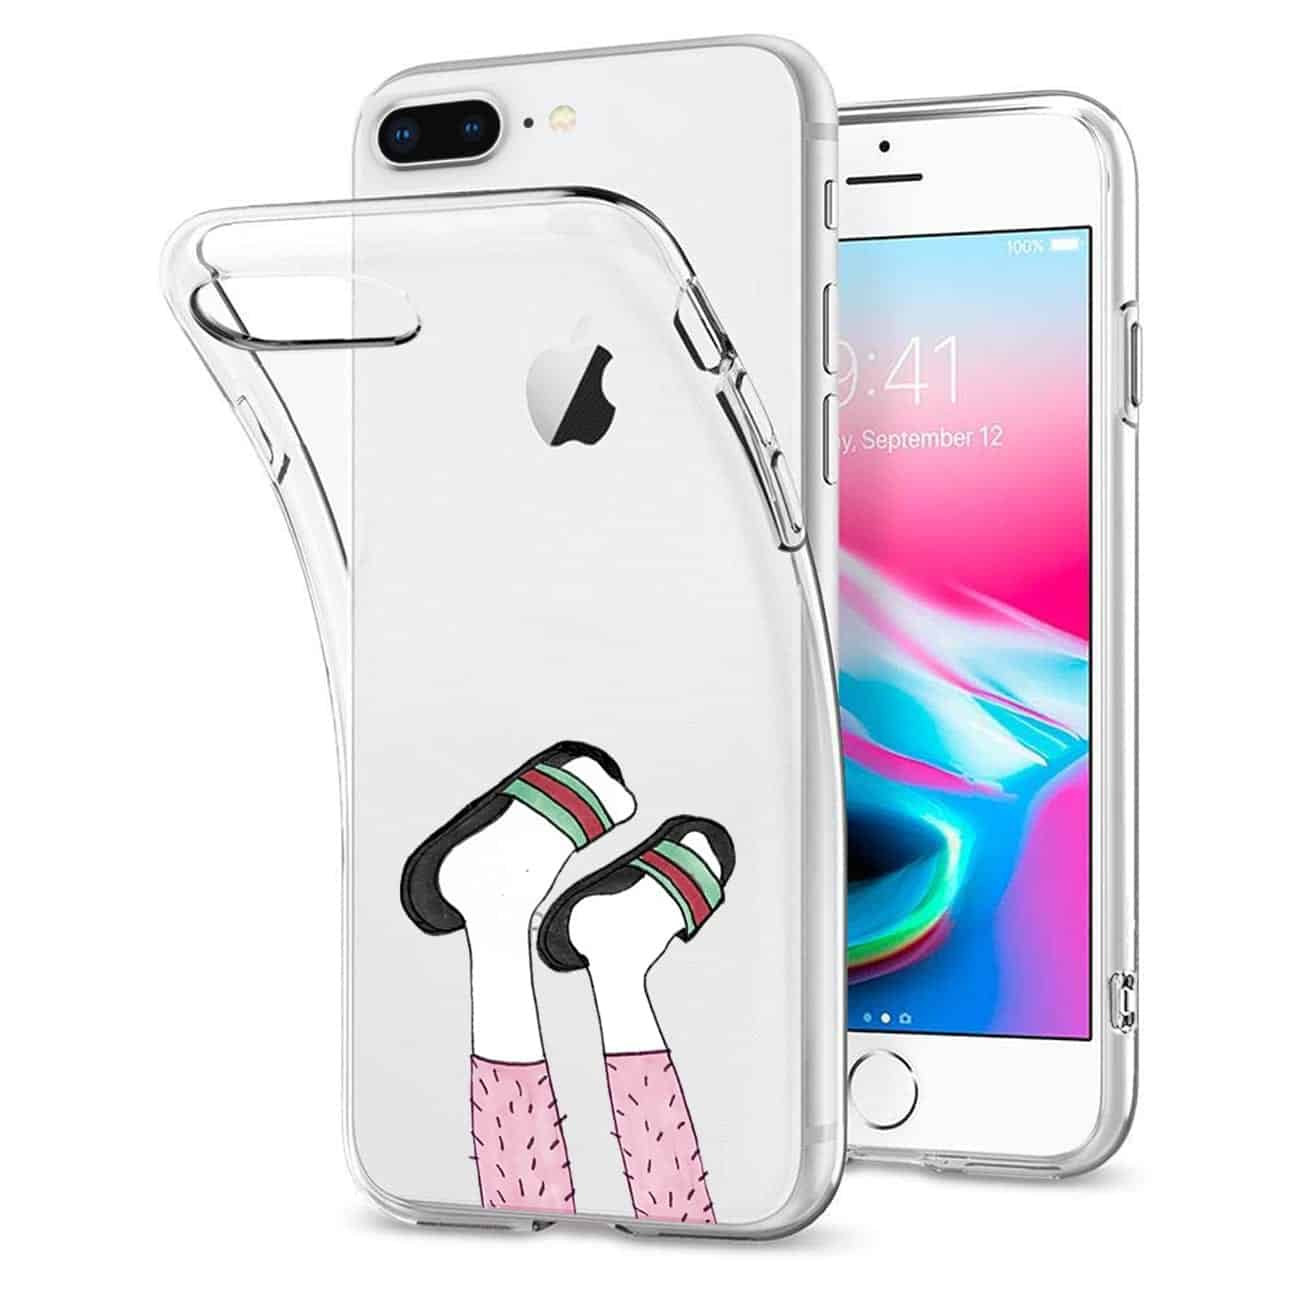 Apple iPhone 8 PLUS Design Air Cushion Case With Feet in White